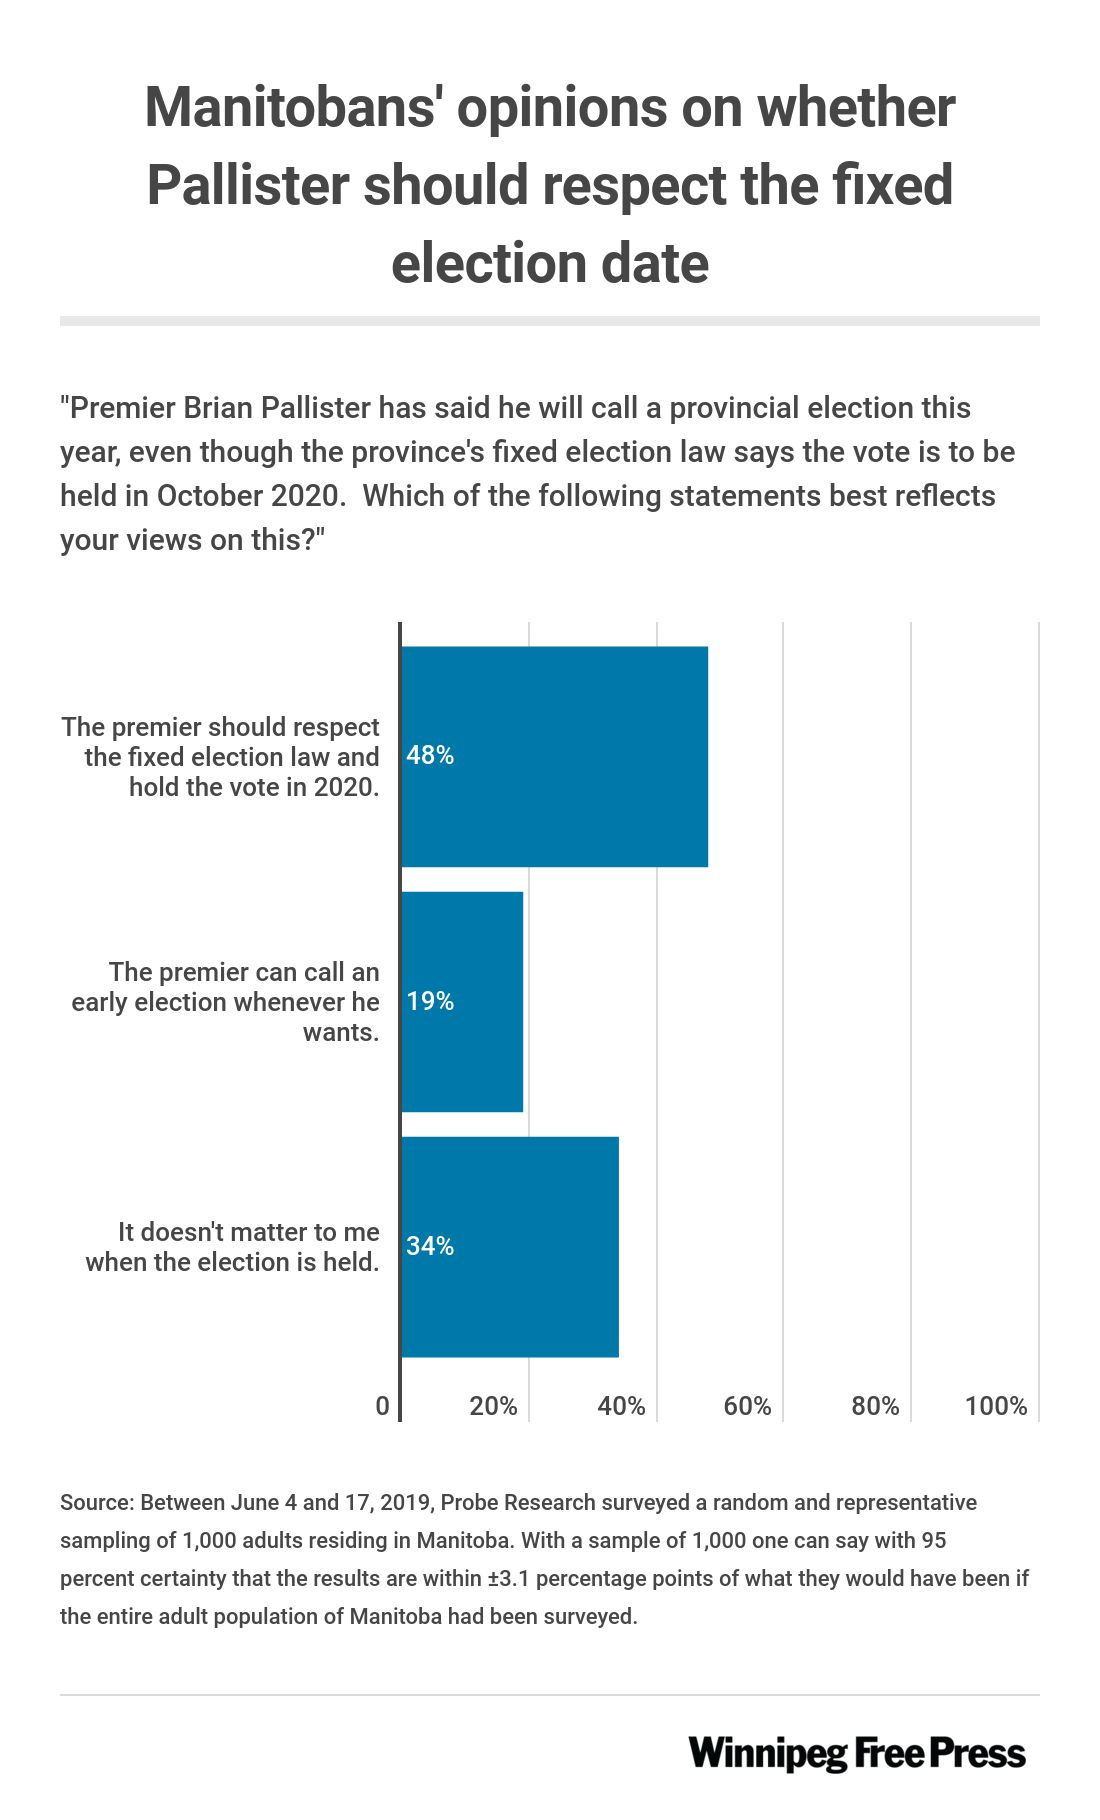 Graphic showing nearly half of Manitobans would prefer the election held in 2020, as per the fixed election date law.